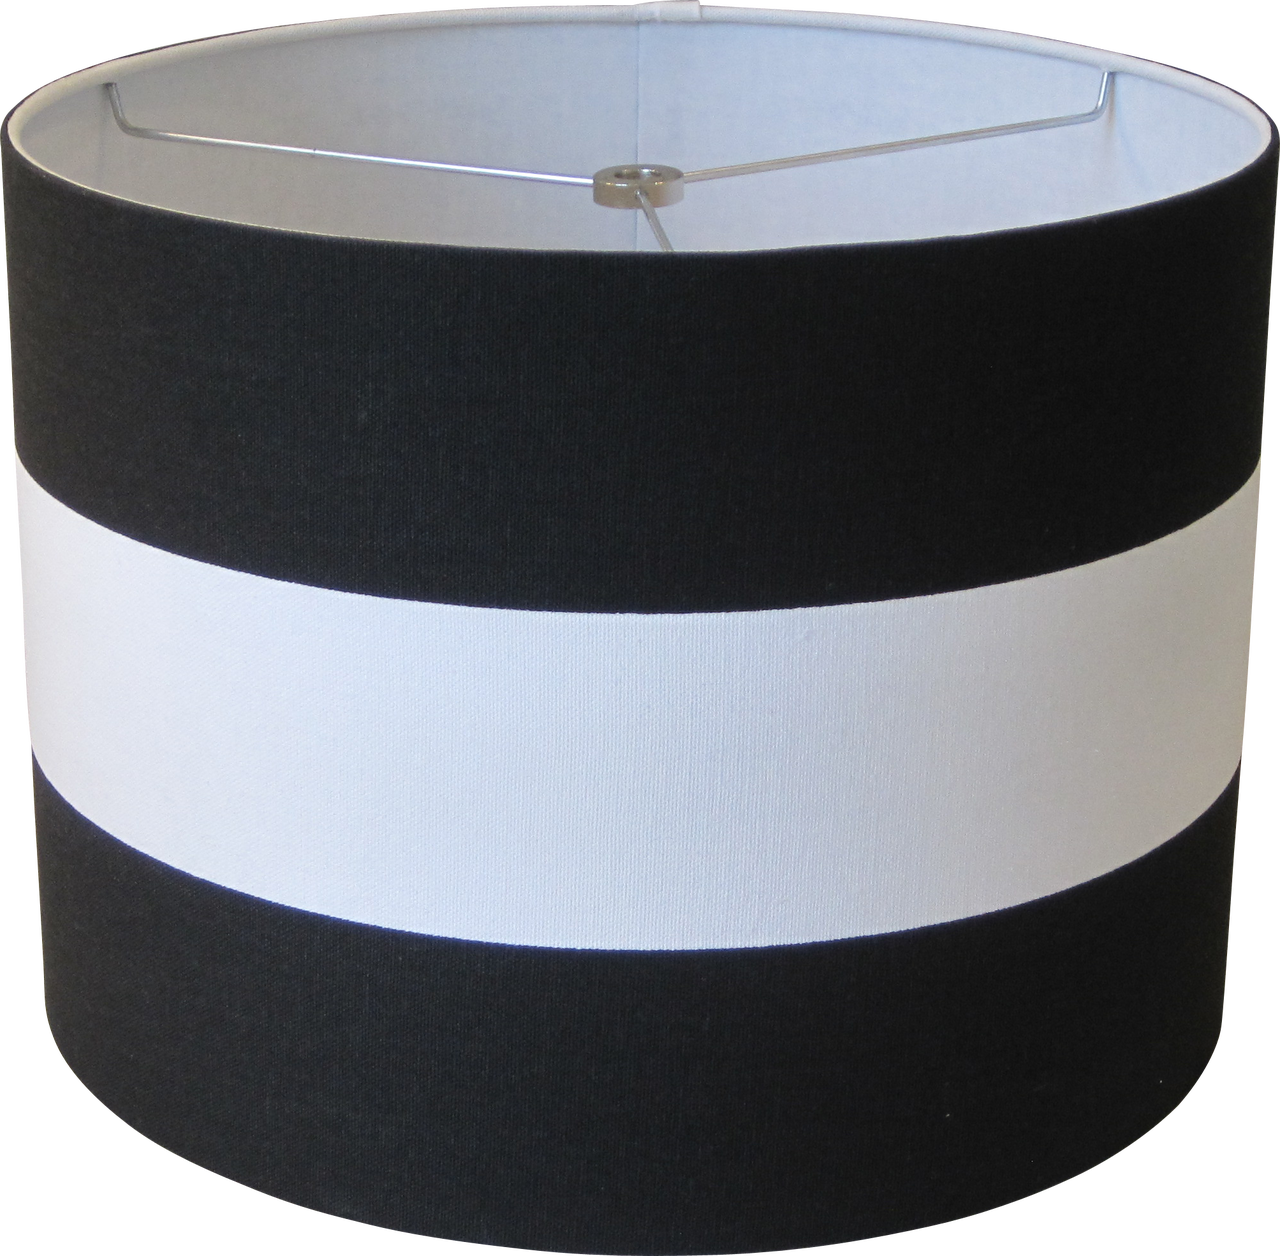 Lampshapes black and white striped lamp shade drum 8499 lampshapes black and white striped lamp shade drum 8499 with free shipping httplampshapesblack and white striped lamp shade drum aloadofball